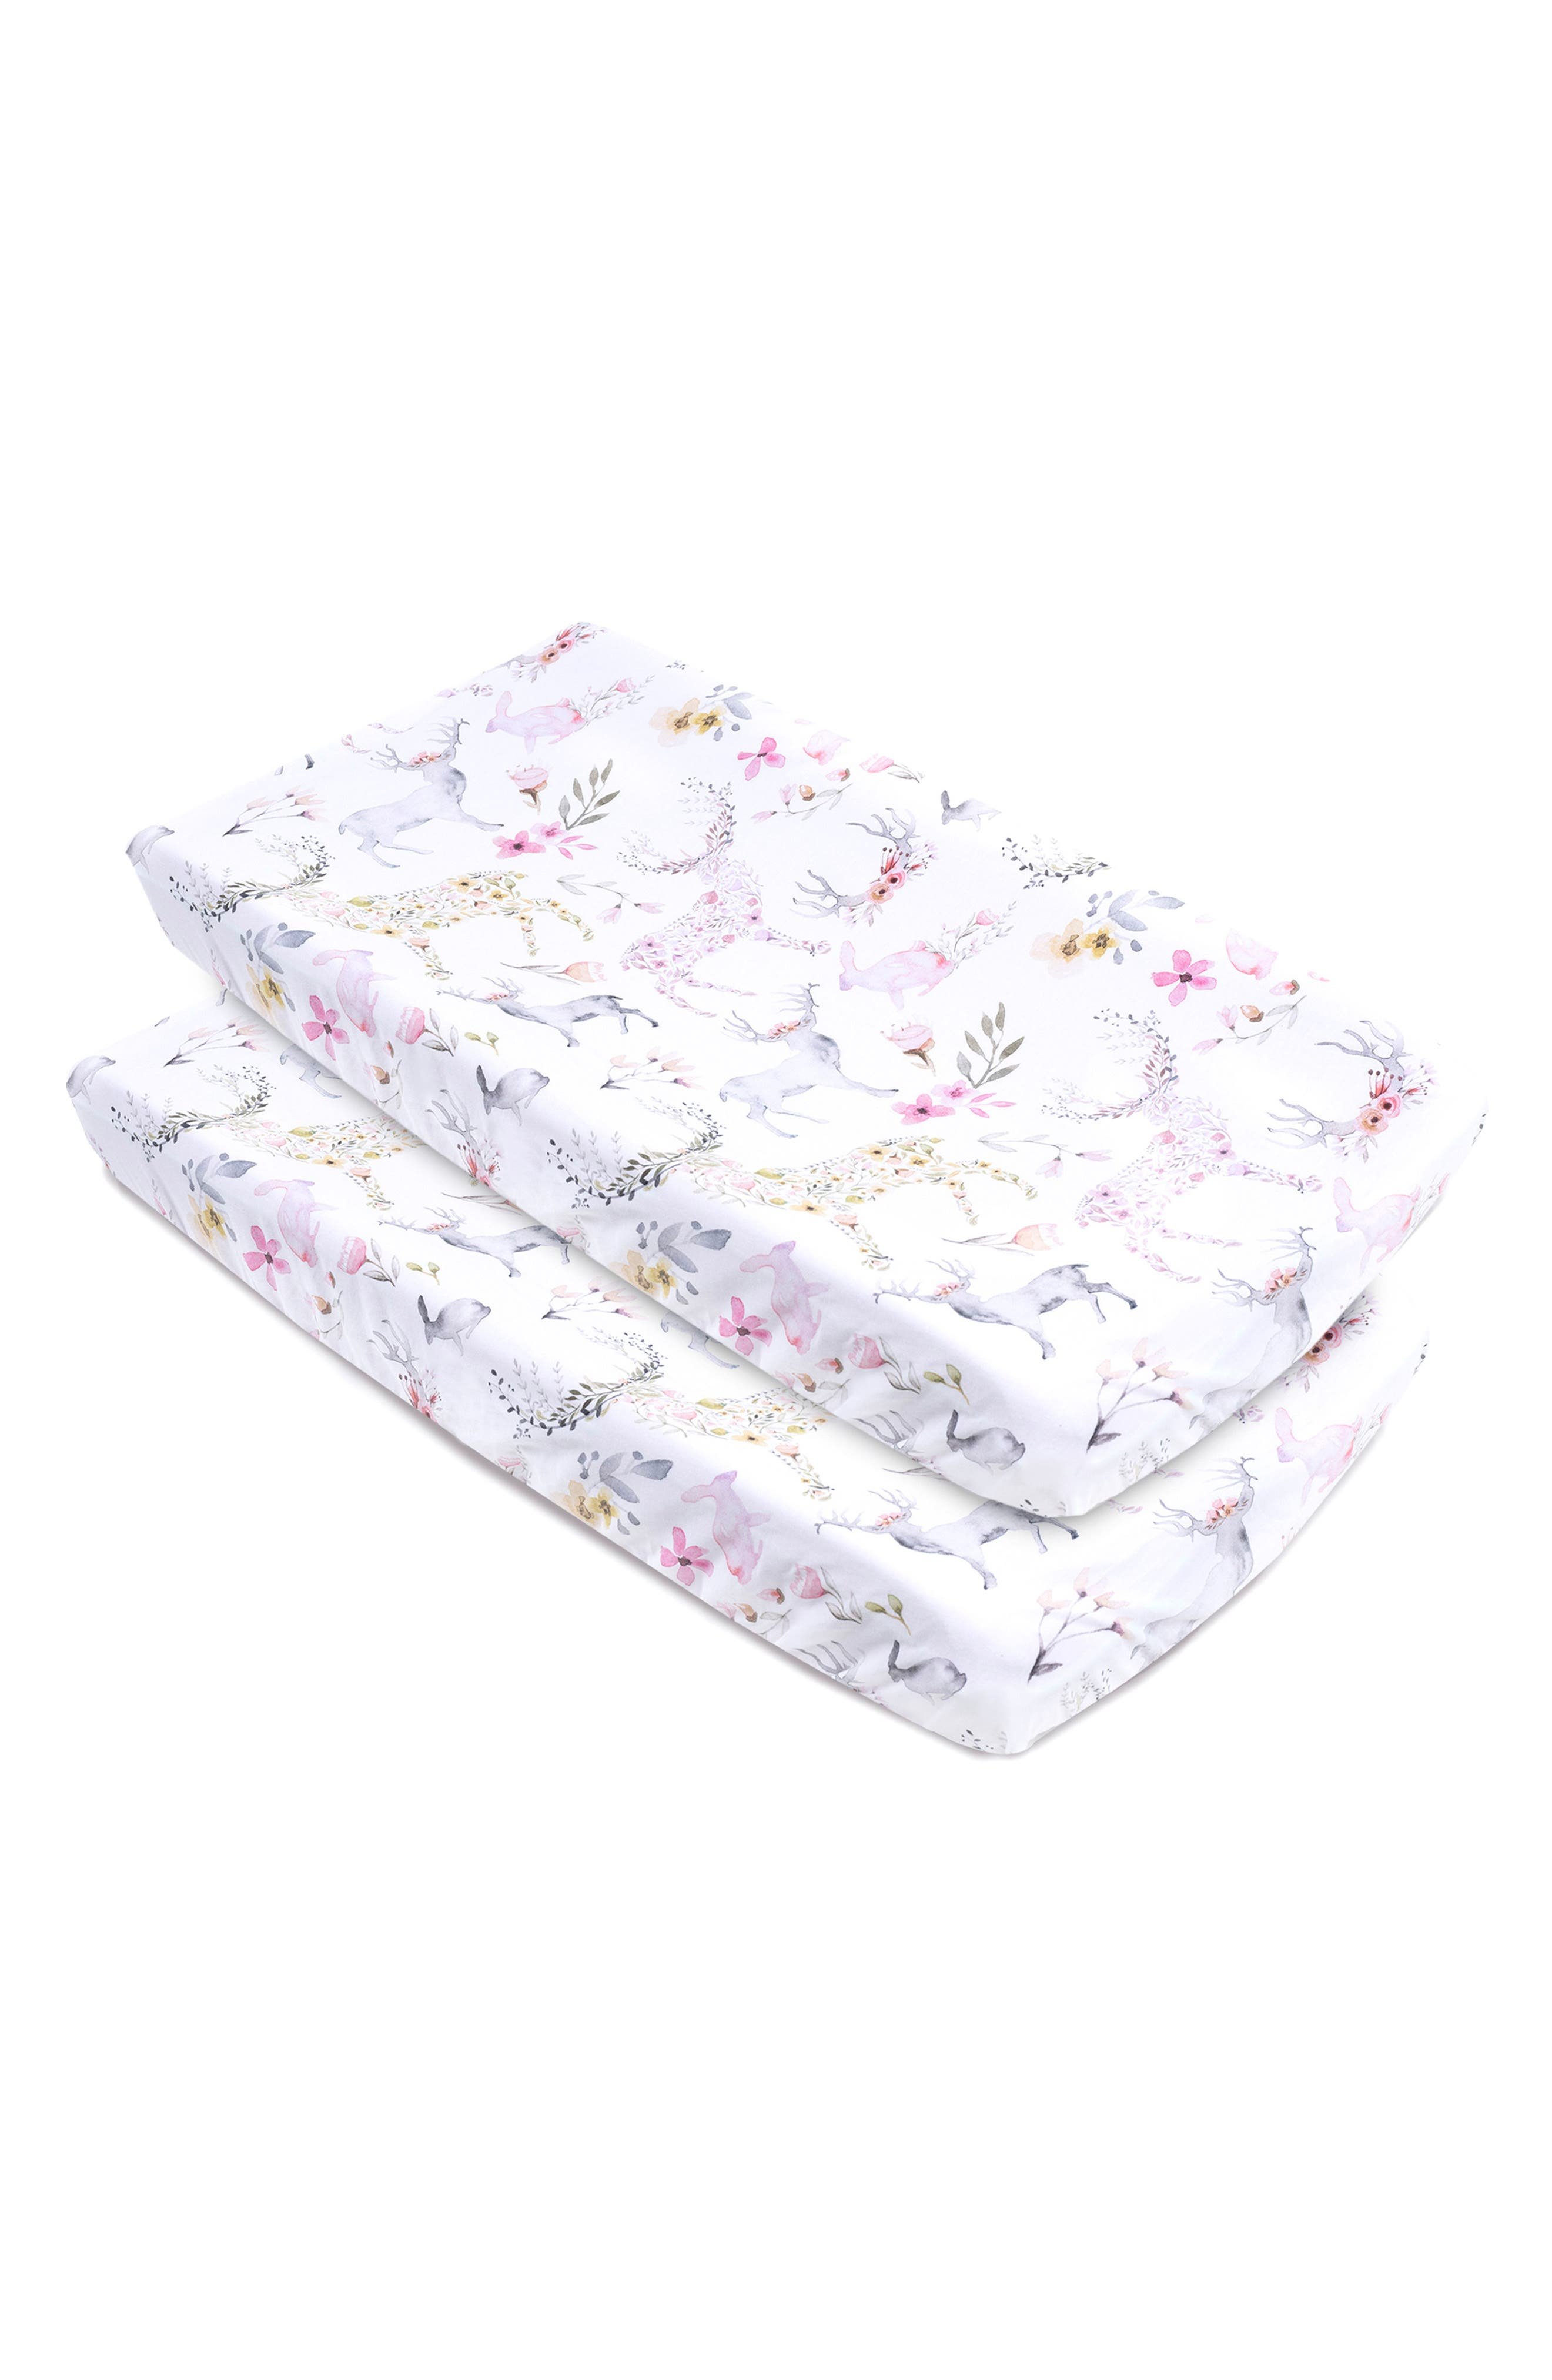 Fawn Print 2-Pack Changing Pad Covers,                             Main thumbnail 1, color,                             Fawn